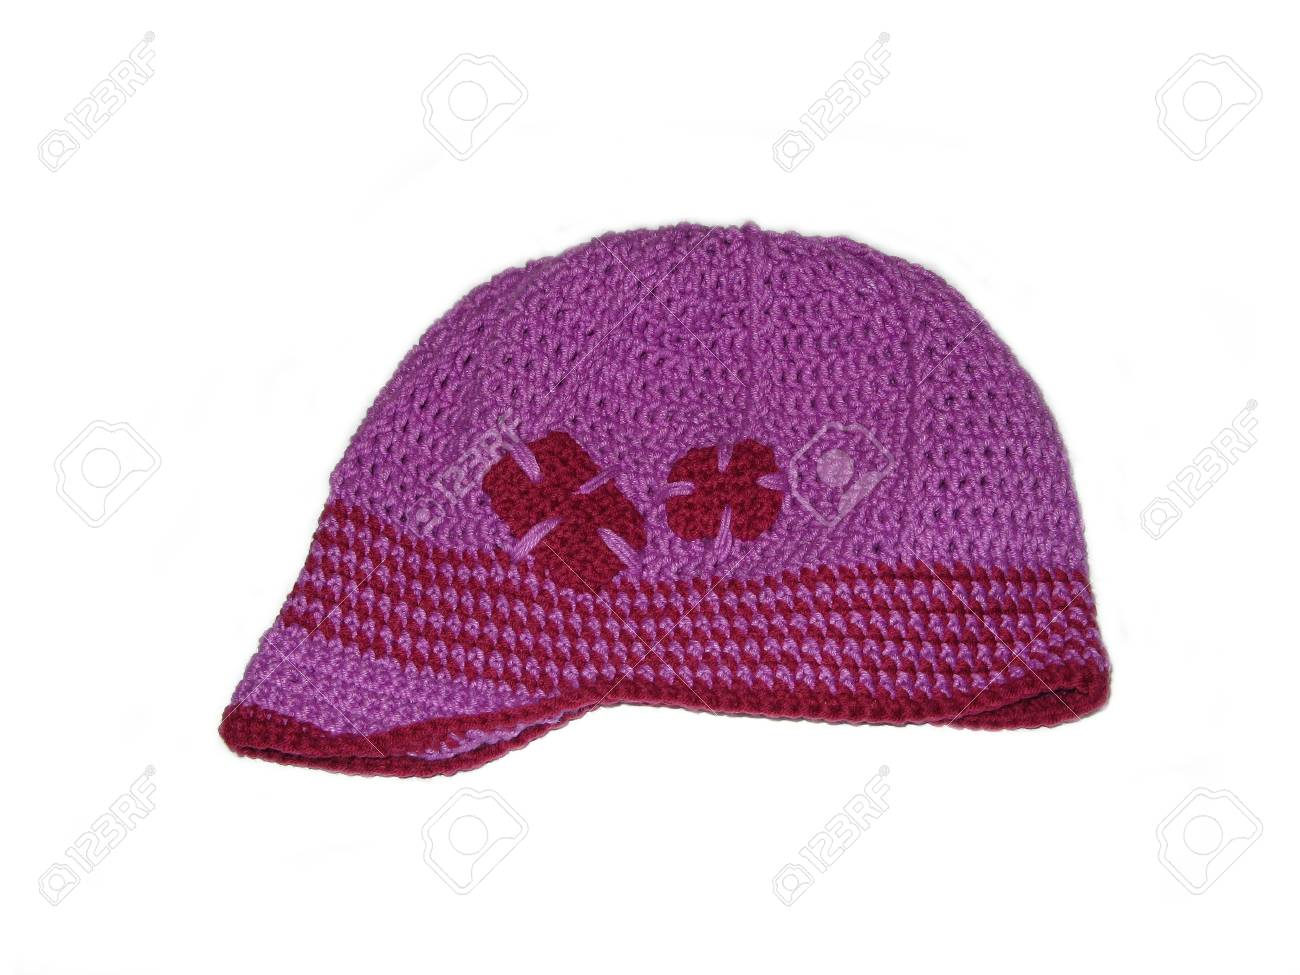 0d2d6006 Crochet Hat Stock Photo, Picture And Royalty Free Image. Image 18720828.